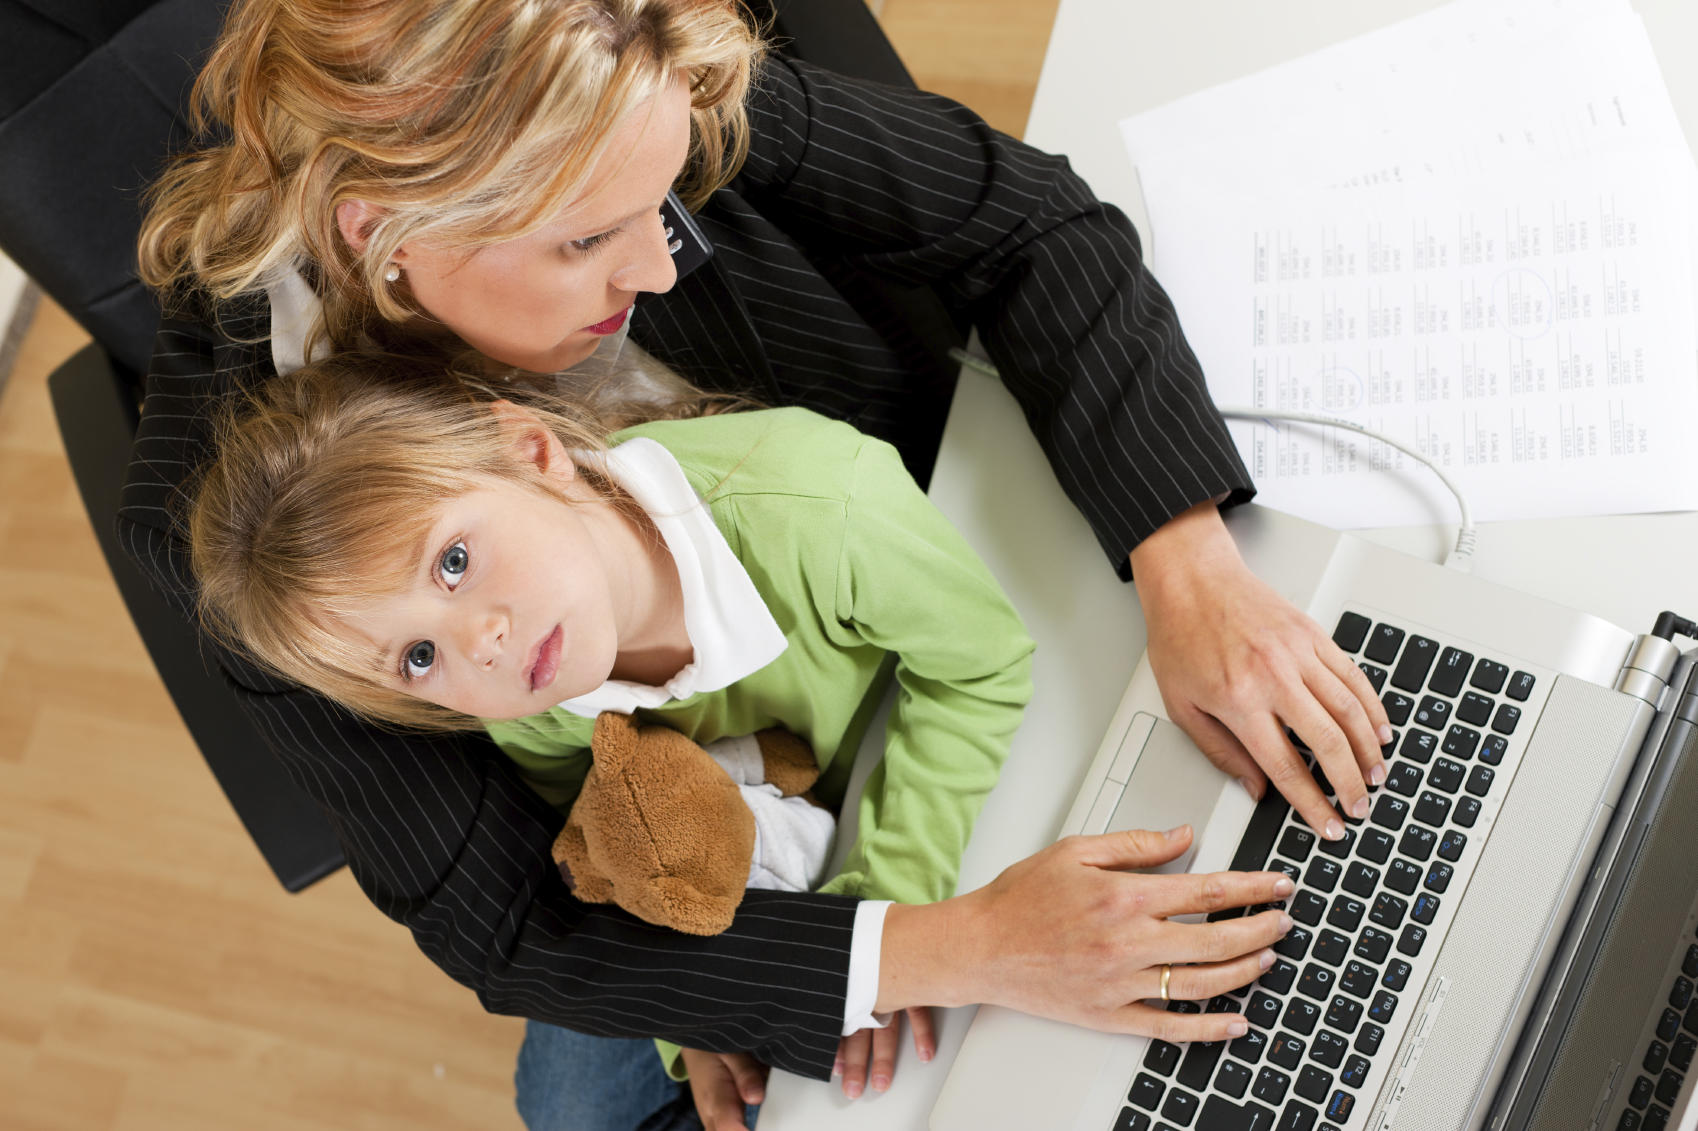 A child sits on her mother's lap as the mother works on a computer